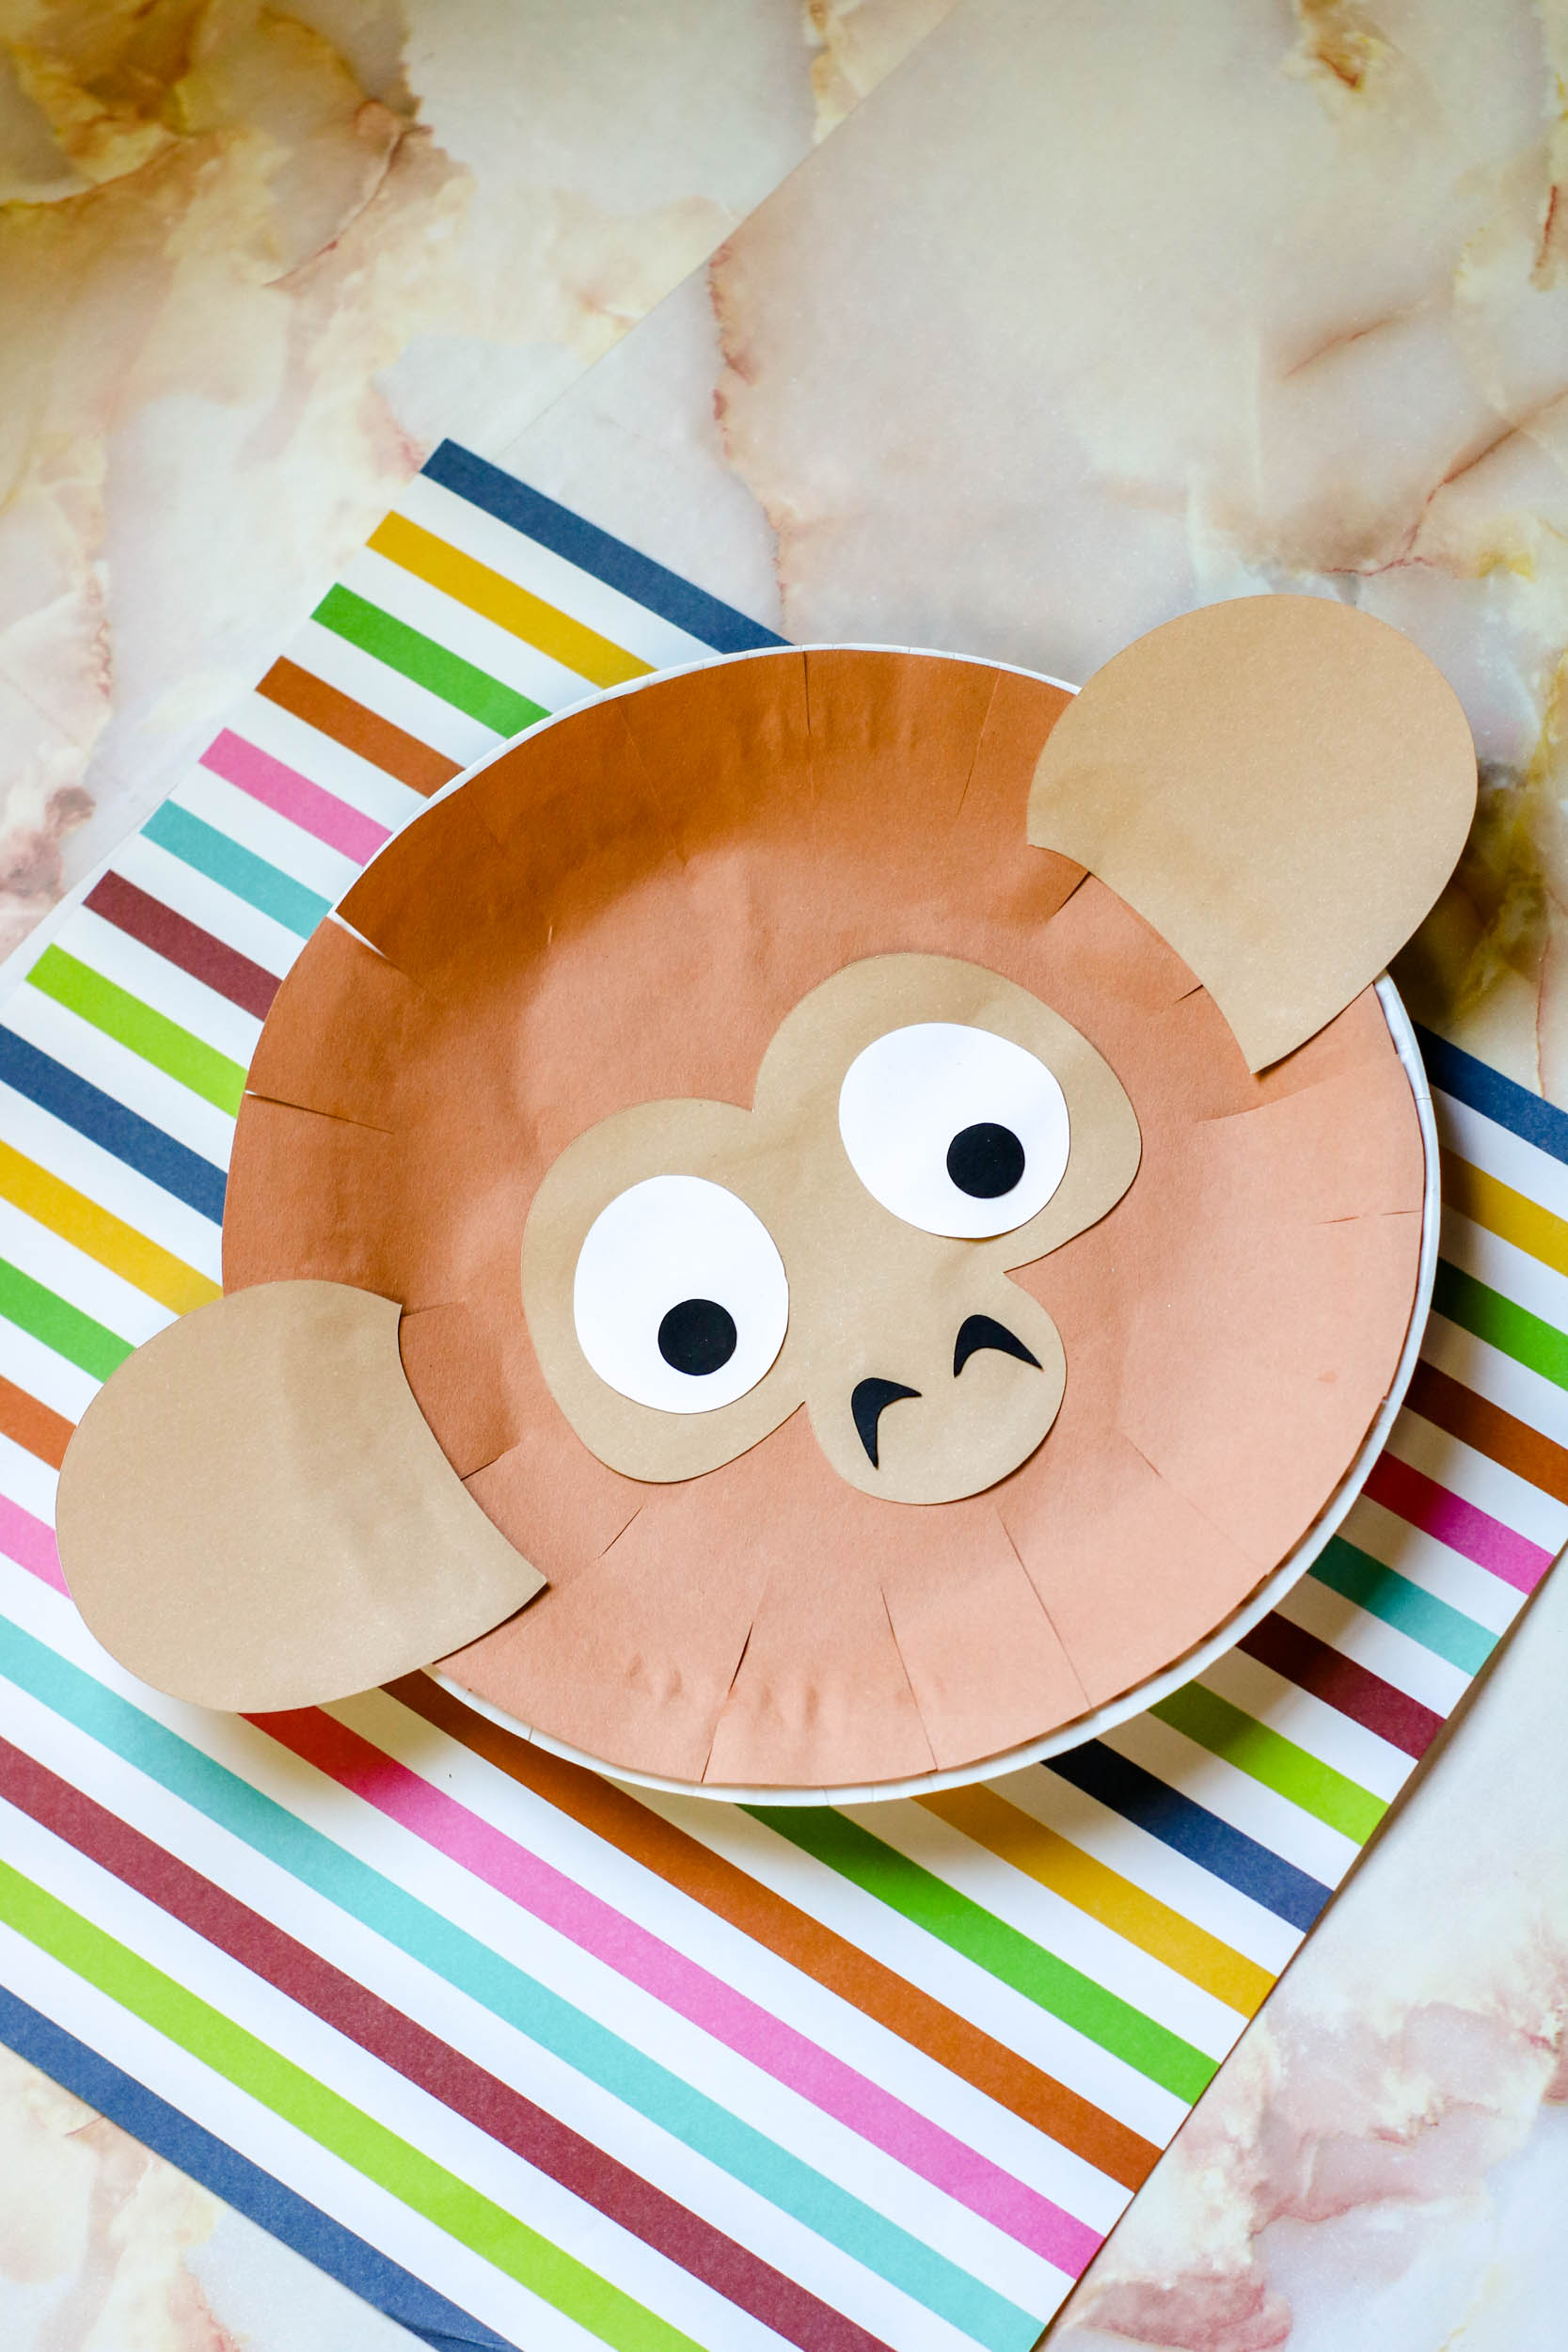 Paper Plate Monkey Puppet on a marbled table.